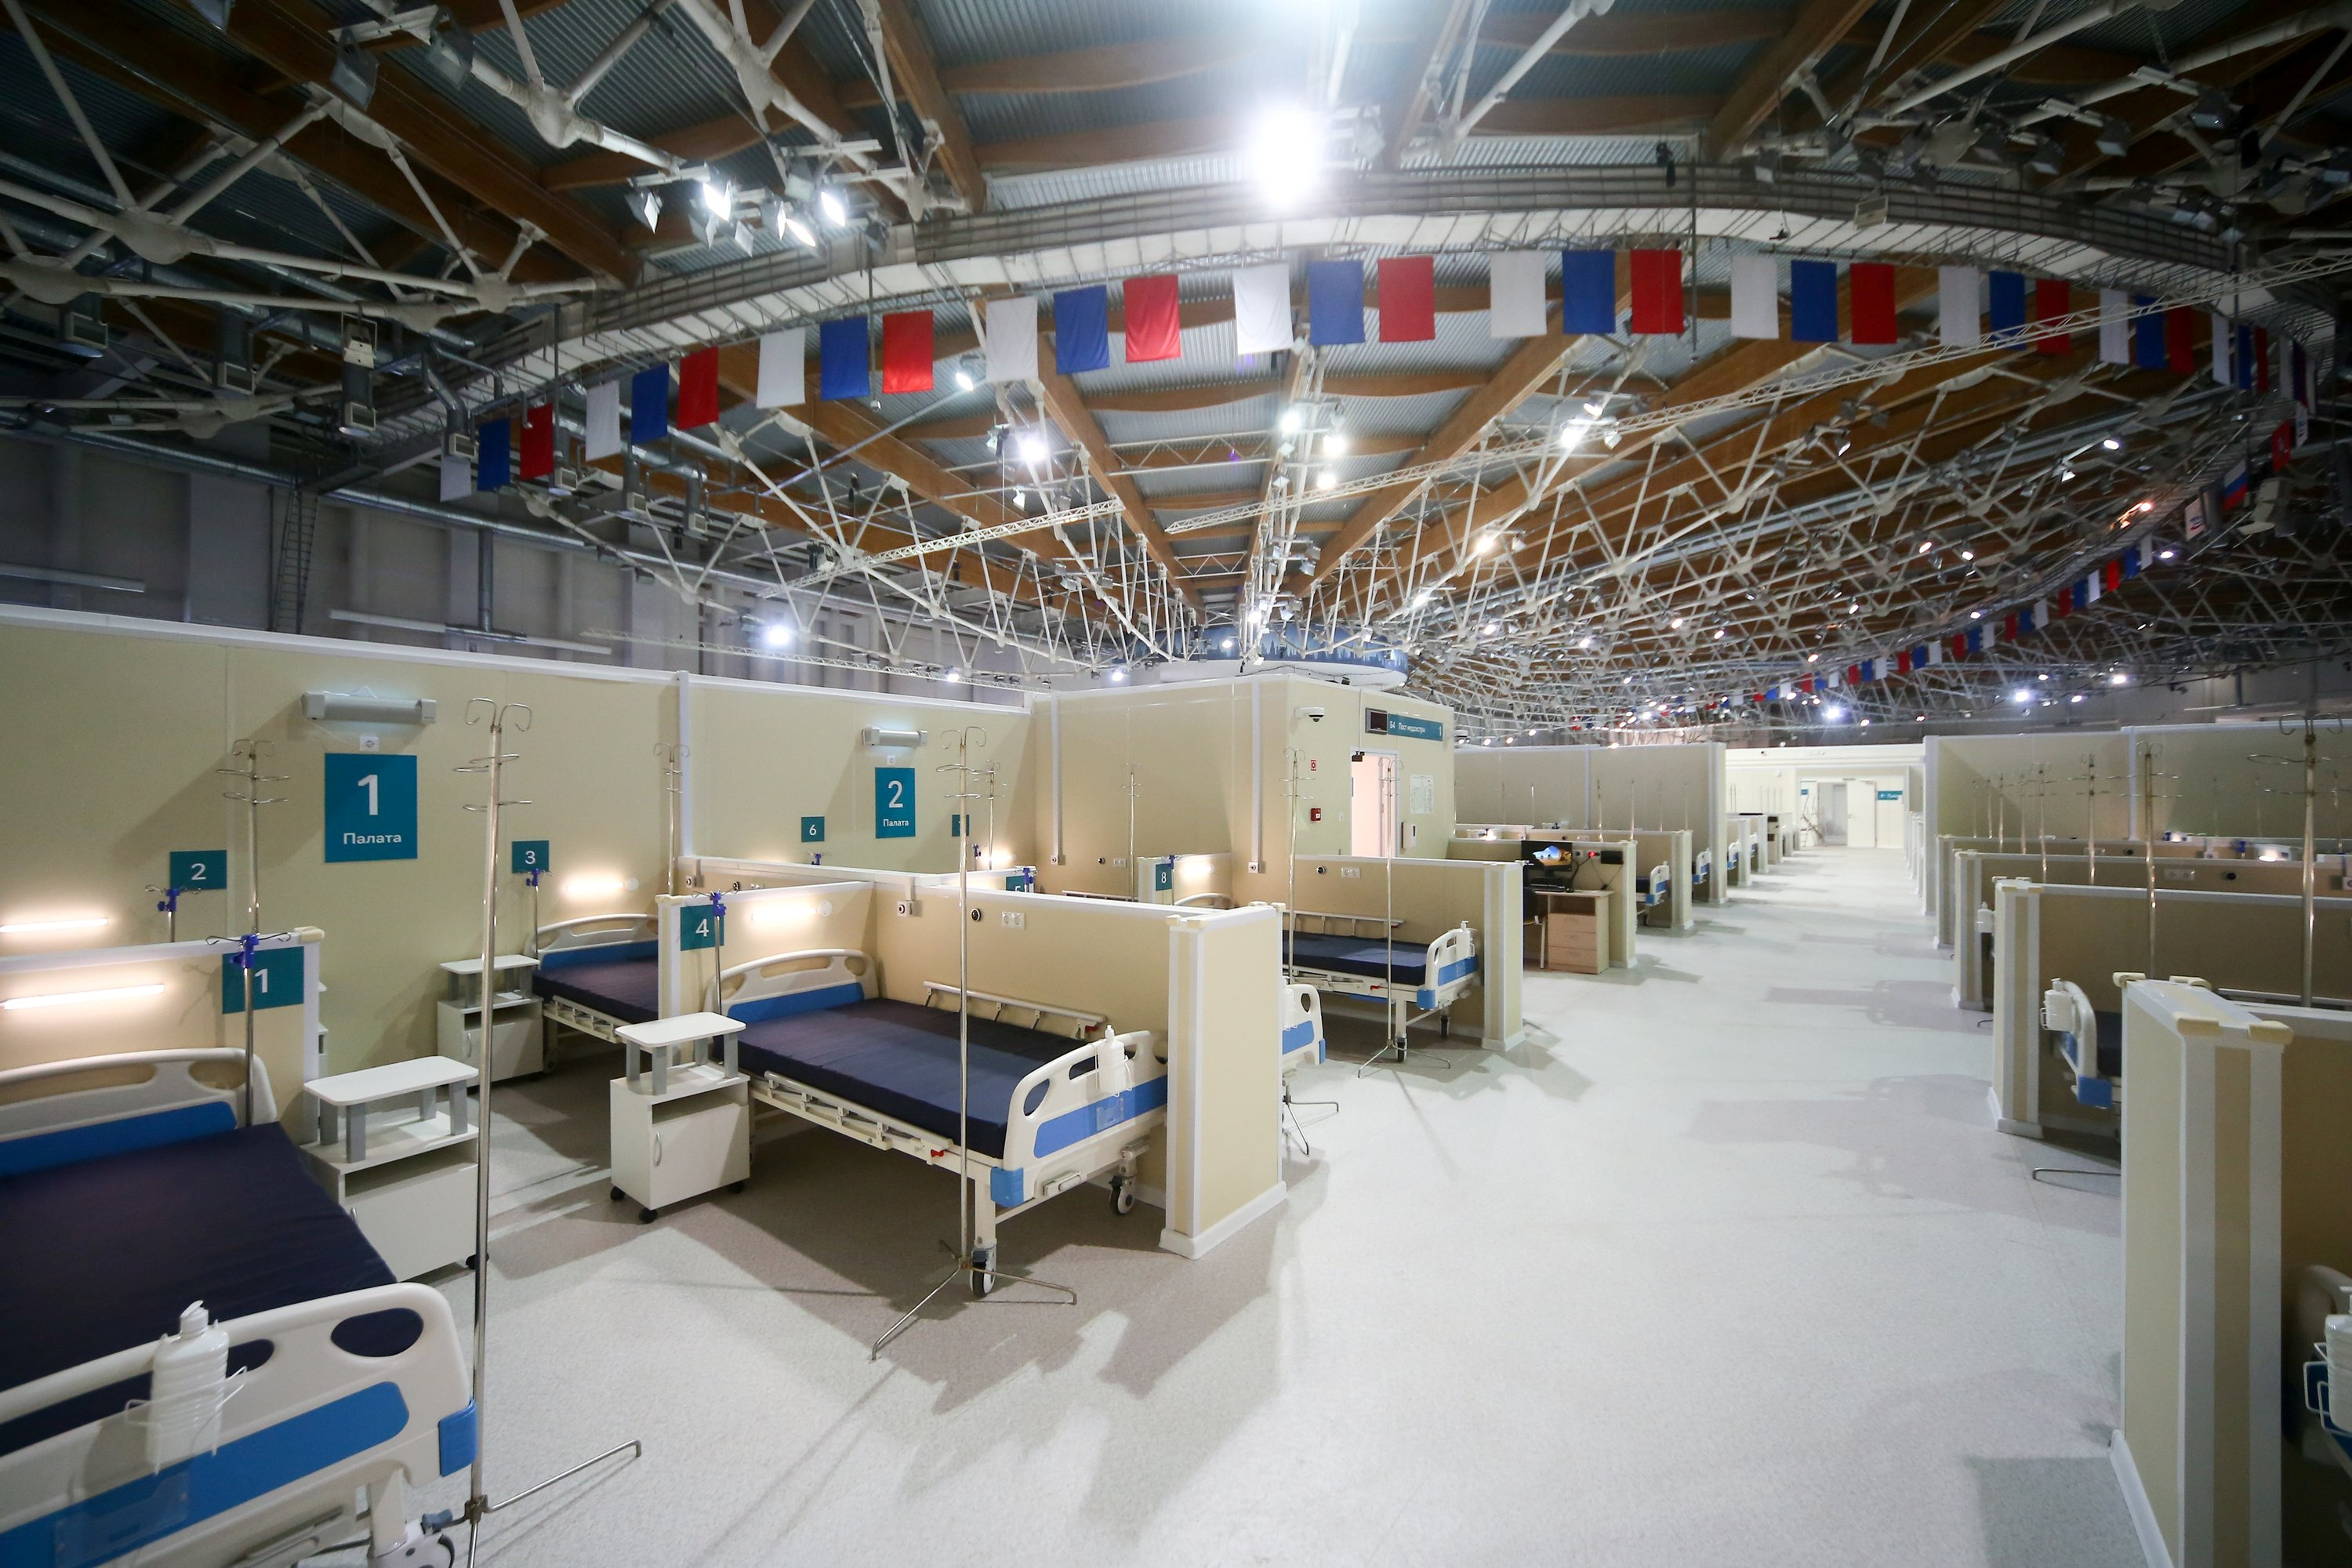 An interior view shows the Krylatskoye indoor ice skating arena following the decision of local authorities to turn it into a temporary hospital amid the coronavirus disease (COVID-19) outbreak in Moscow, Russia October 5, 2020. Sergei Vedyashkin/Moscow News Agency/Handout via REUTERS